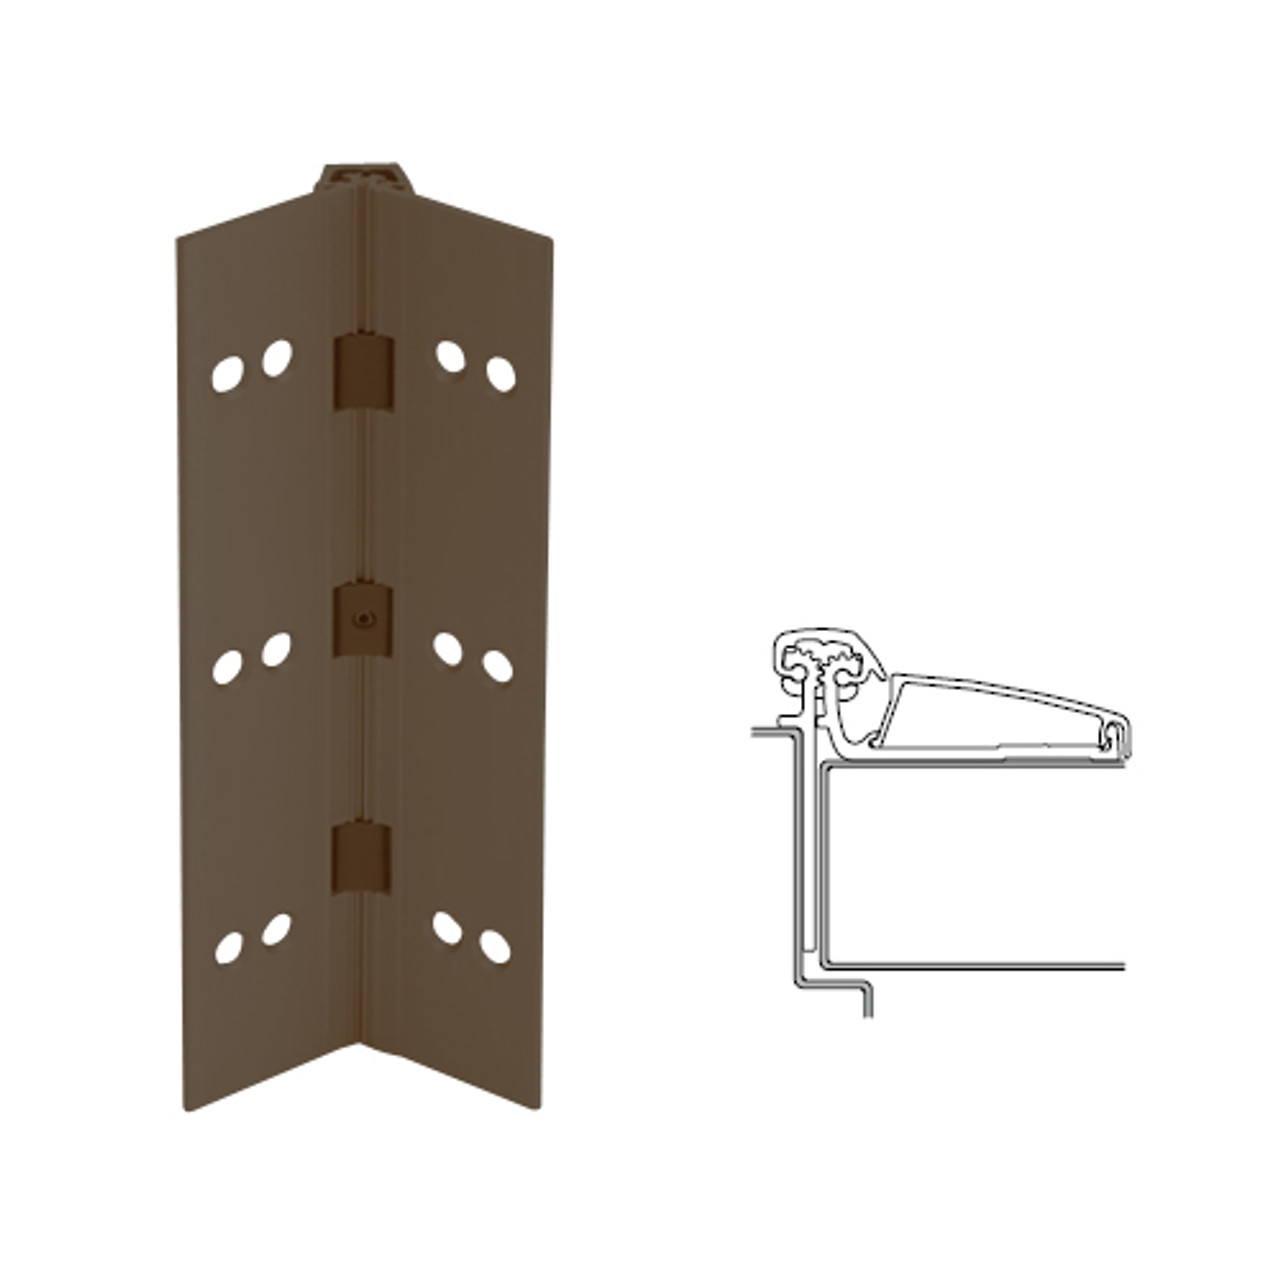 046XY-313AN-85-SECWDWD IVES Adjustable Half Surface Continuous Geared Hinges with Security Screws - Hex Pin Drive in Dark Bronze Anodized